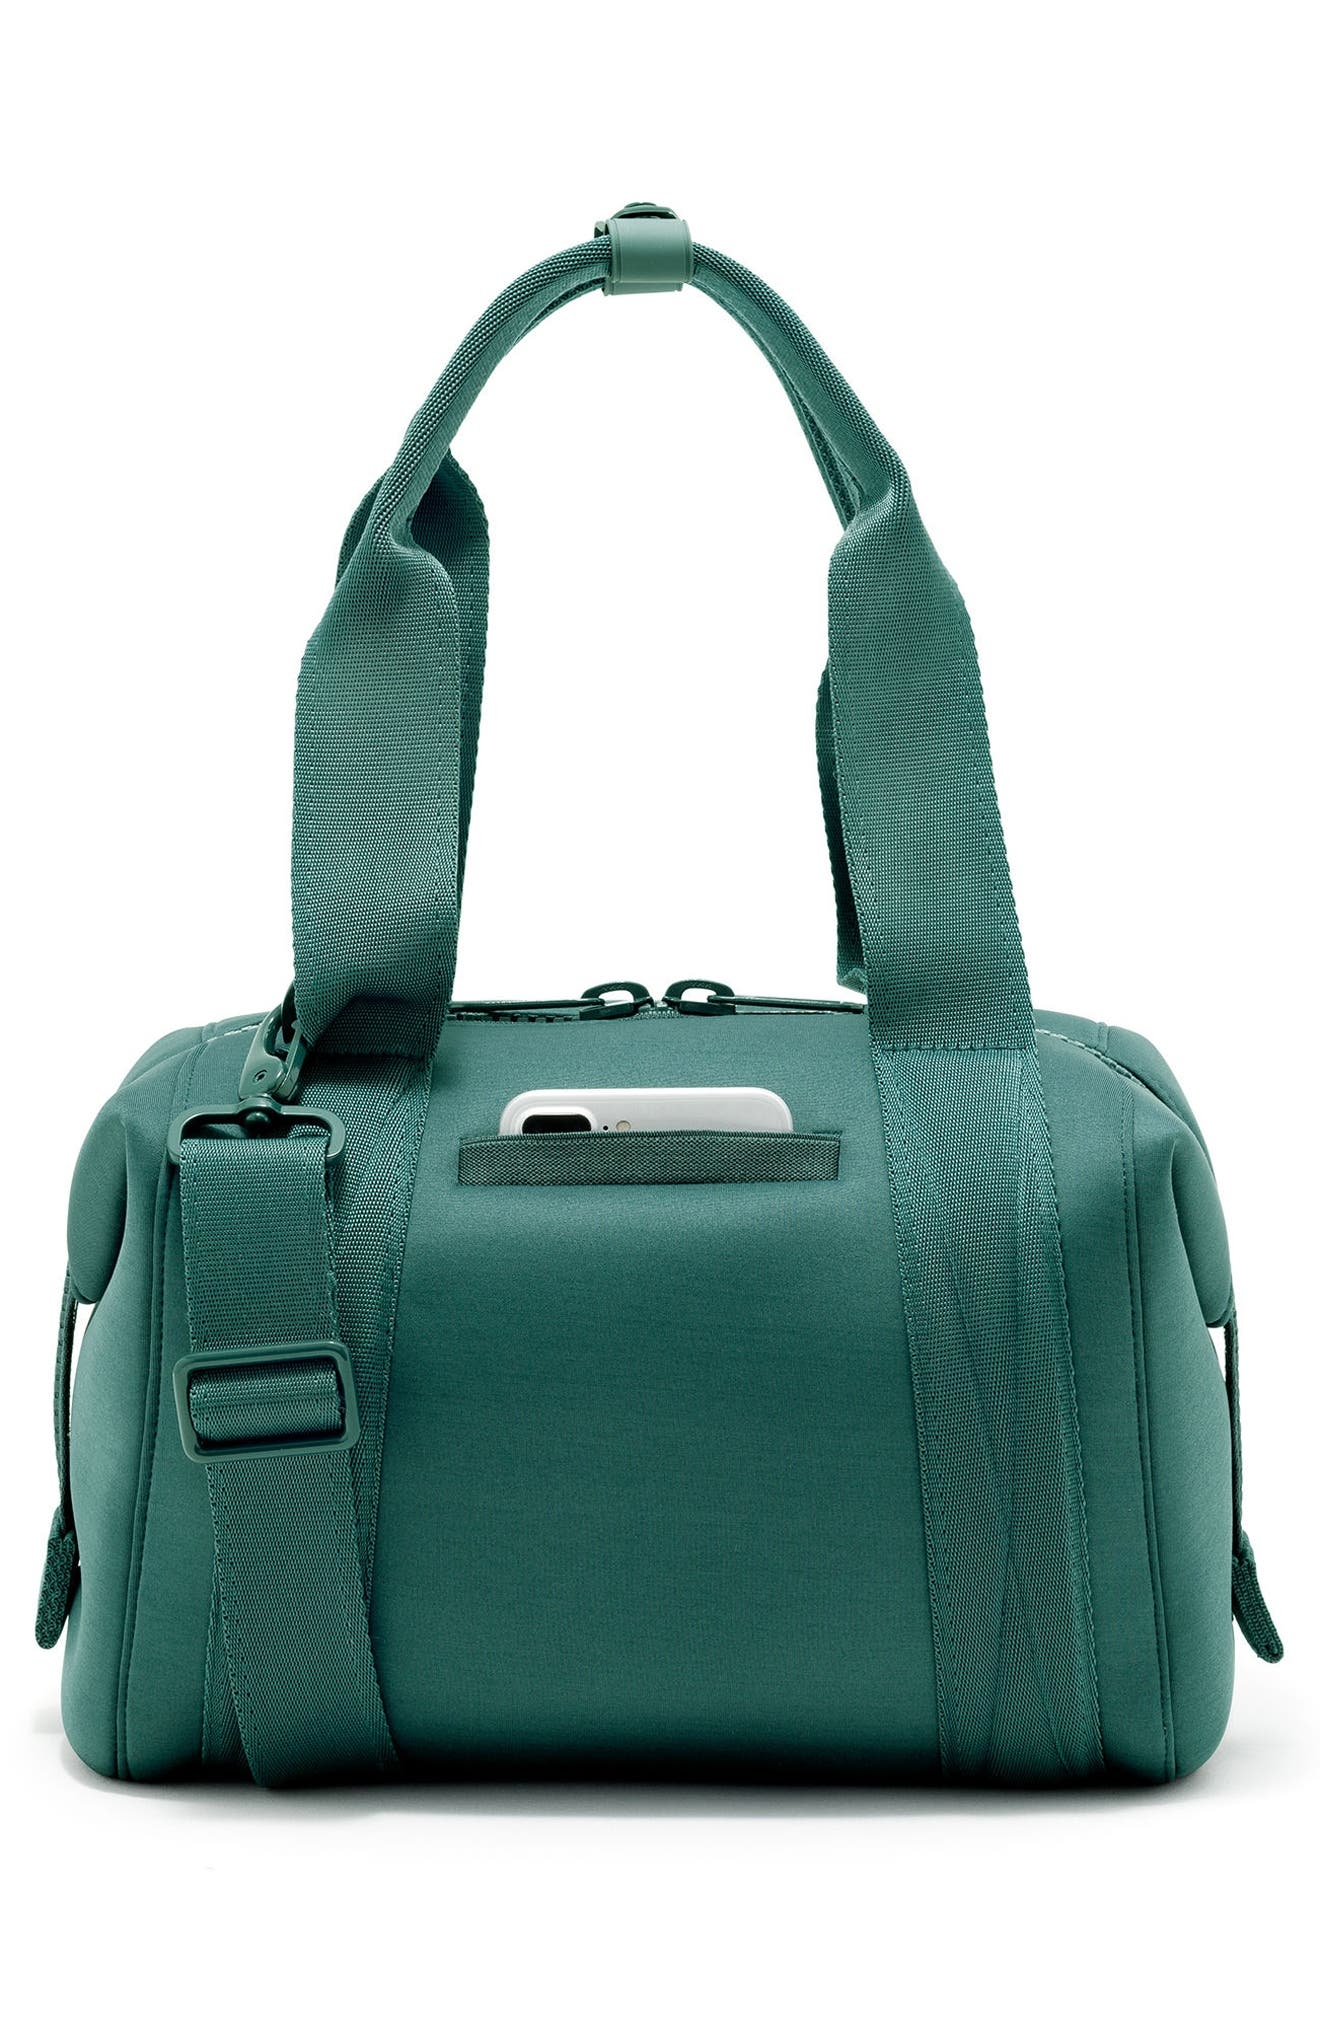 Alternate Image 3  - Dagne Dover 365 Small Landon Carryall Duffel Bag